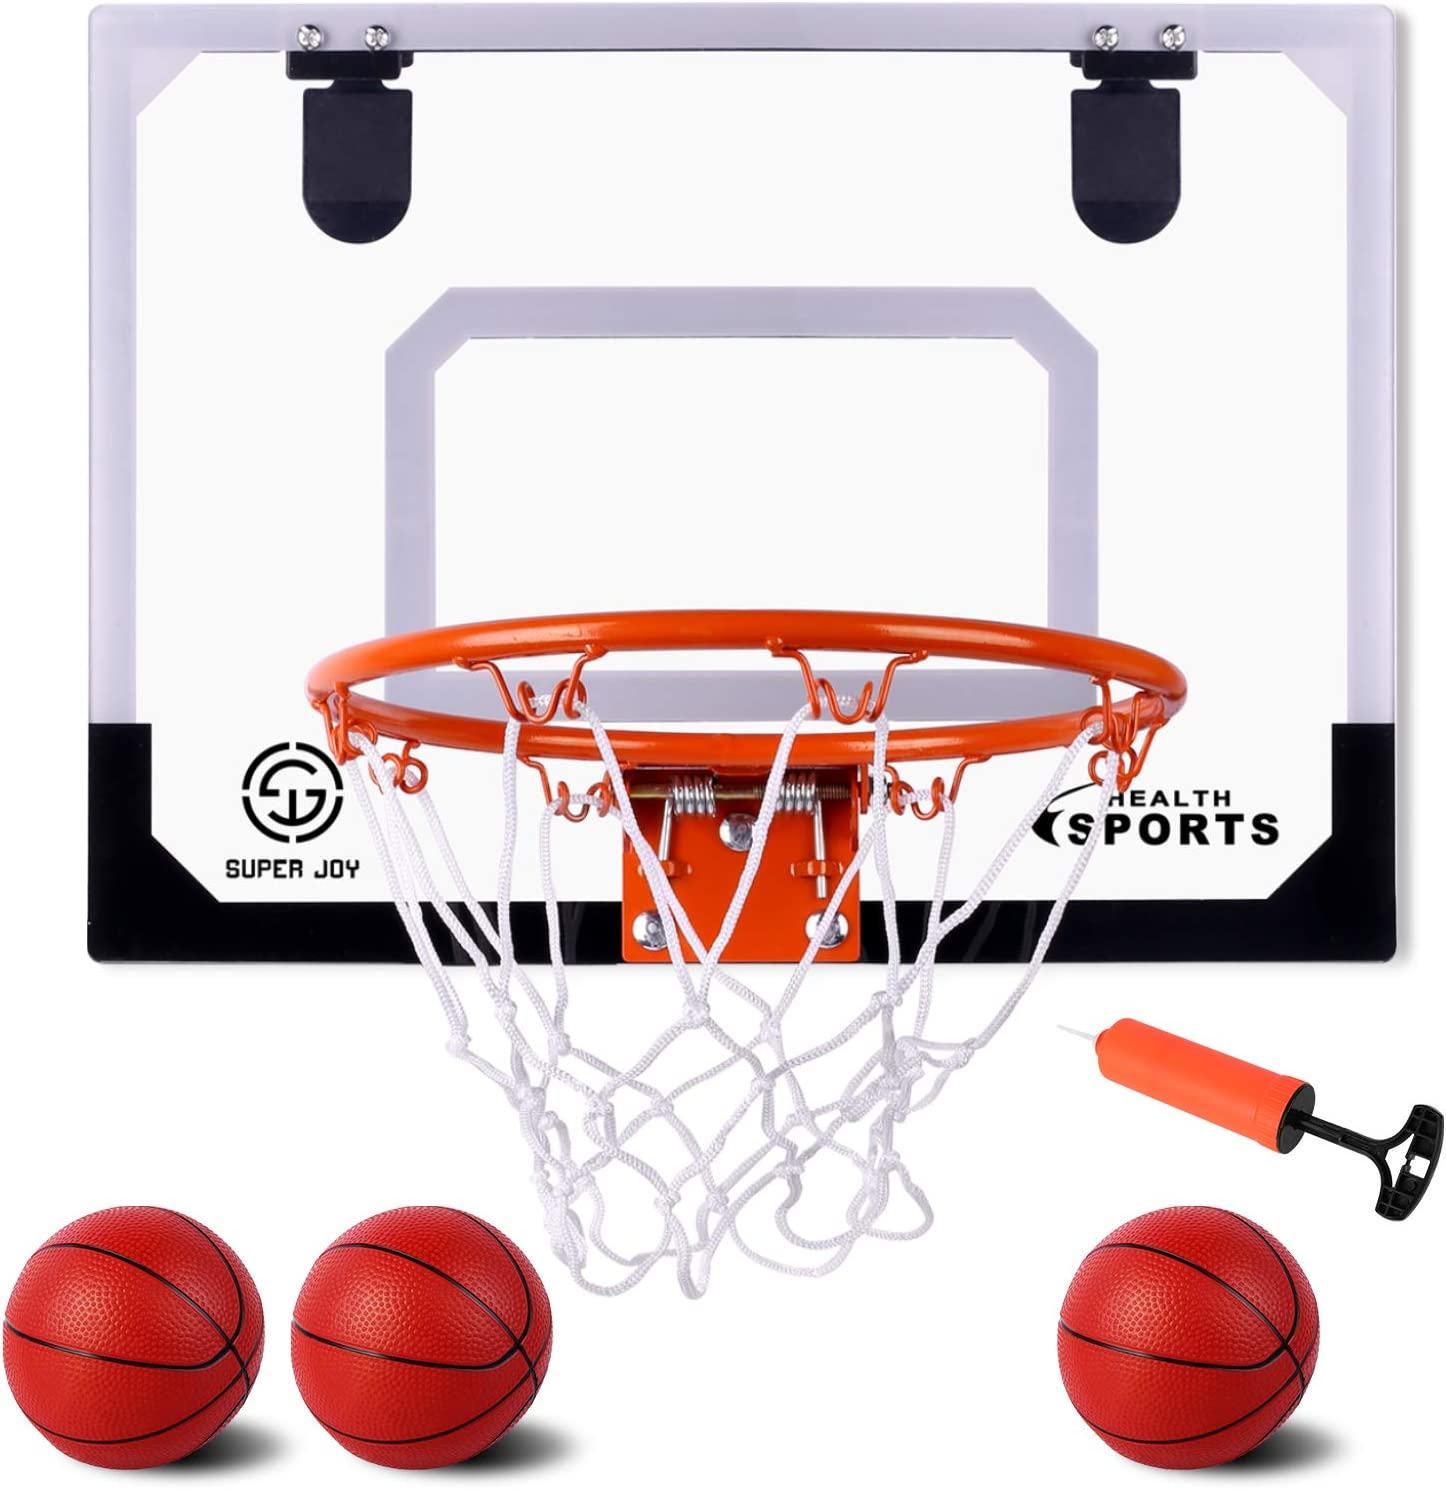 Indoor Mini Basketball Hoop Set Over The Door with 3 Balls 17.72 x 13.78 XL Size Basketball Backboard Indoor Slam Dunk Game for Kids and Adults